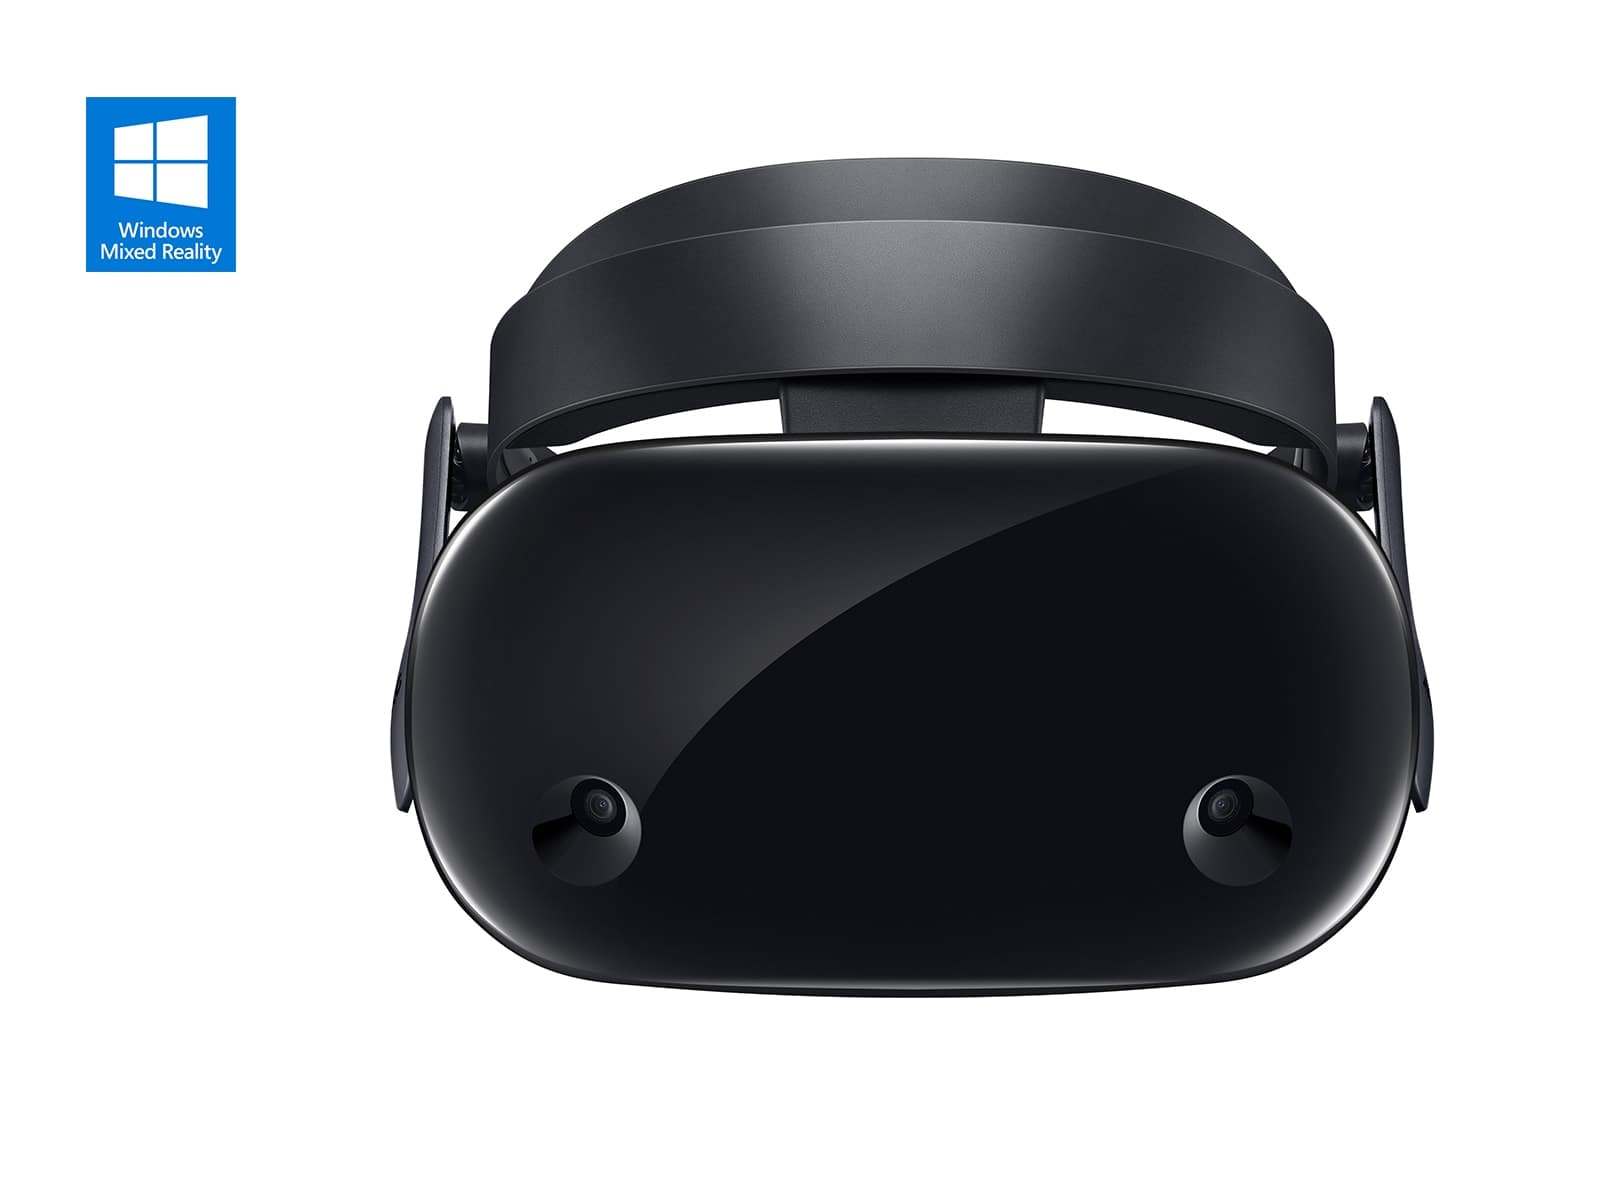 HMD Odyssey - Windows Mixed Reality Headset at nearly half price! $249.99